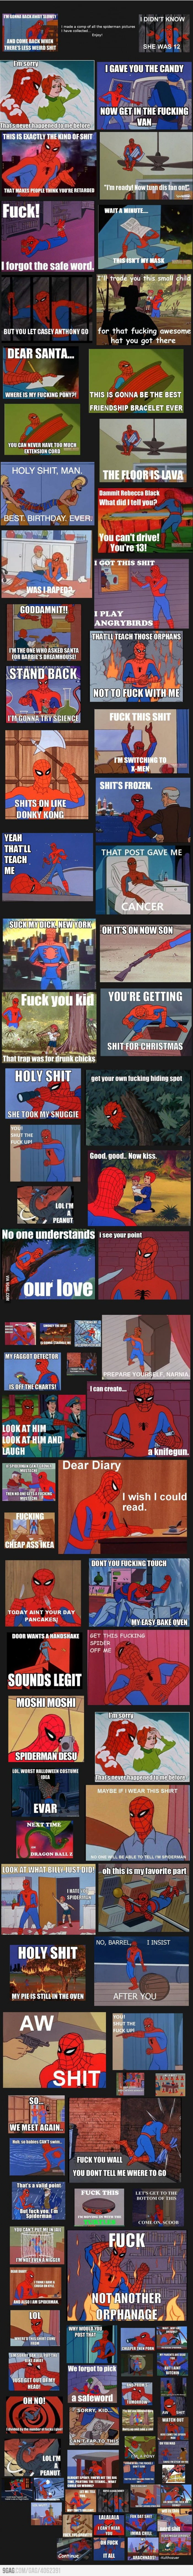 Best of spiderman